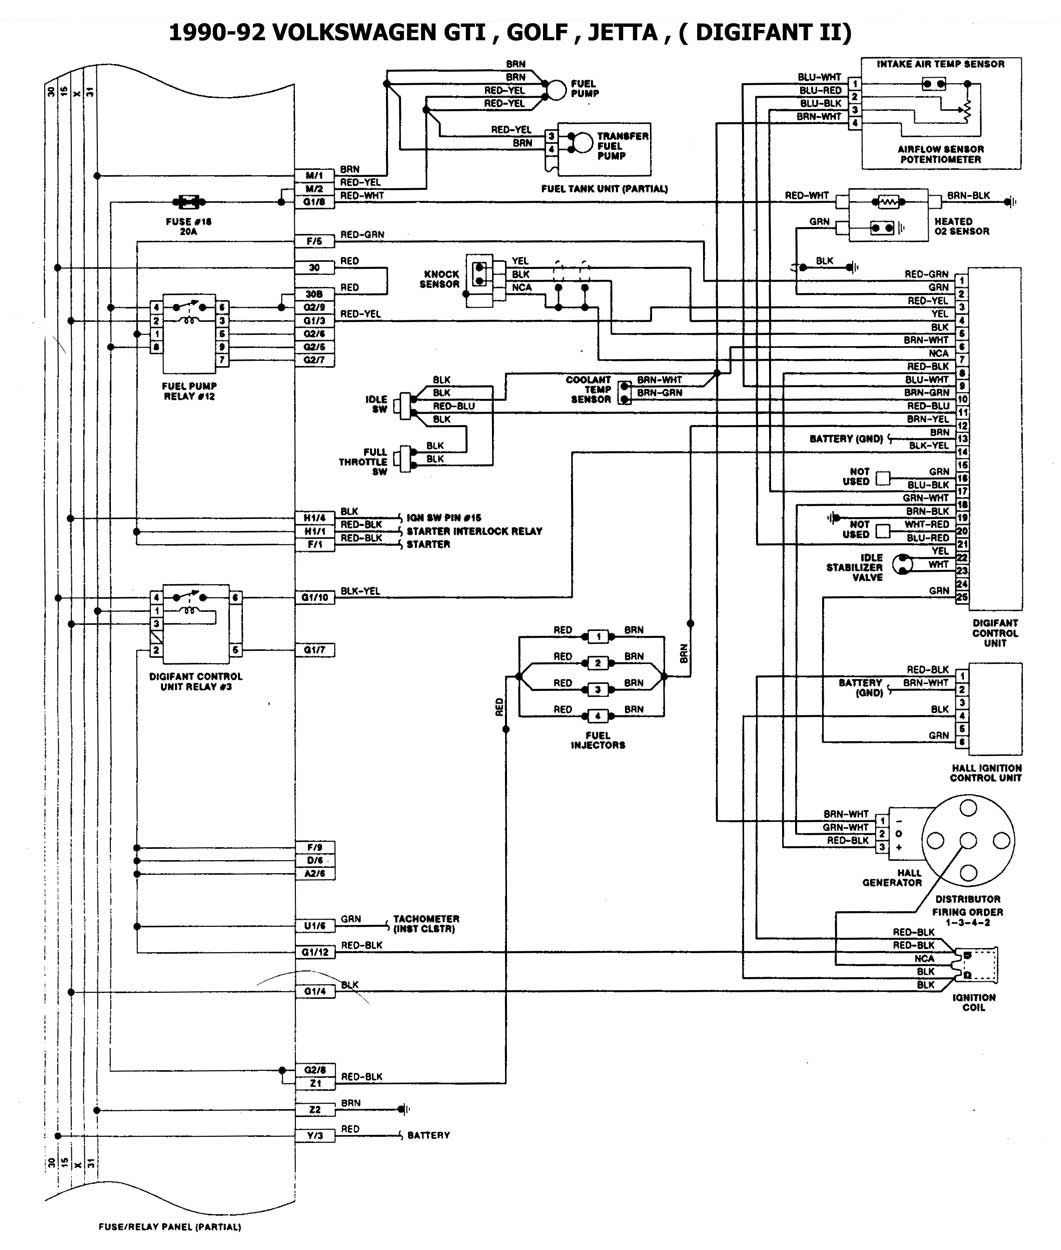 2003 Ford Ranger Edge Wiring Diagram besides VacuumLineDiagram besides 2000 Dodge Neon Oil Pan Diagram as well Vw Jetta 2012 Fuse Box Diagram additionally Honda D16y8 Engine Diagram. on 2003 acura tl oil pan diagram